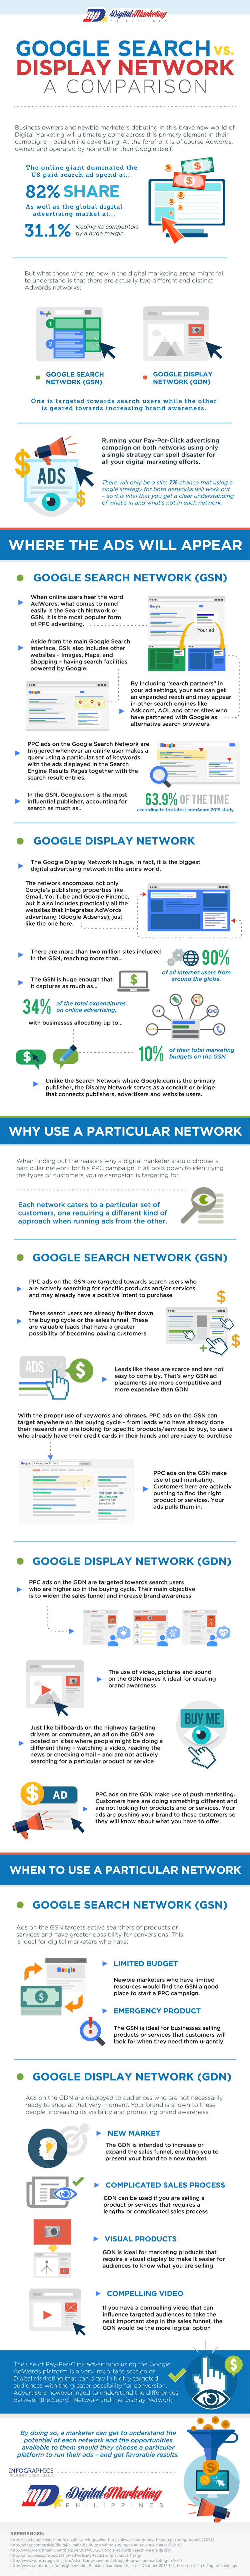 Google-Search-vs-Display-Network-A-Comparison